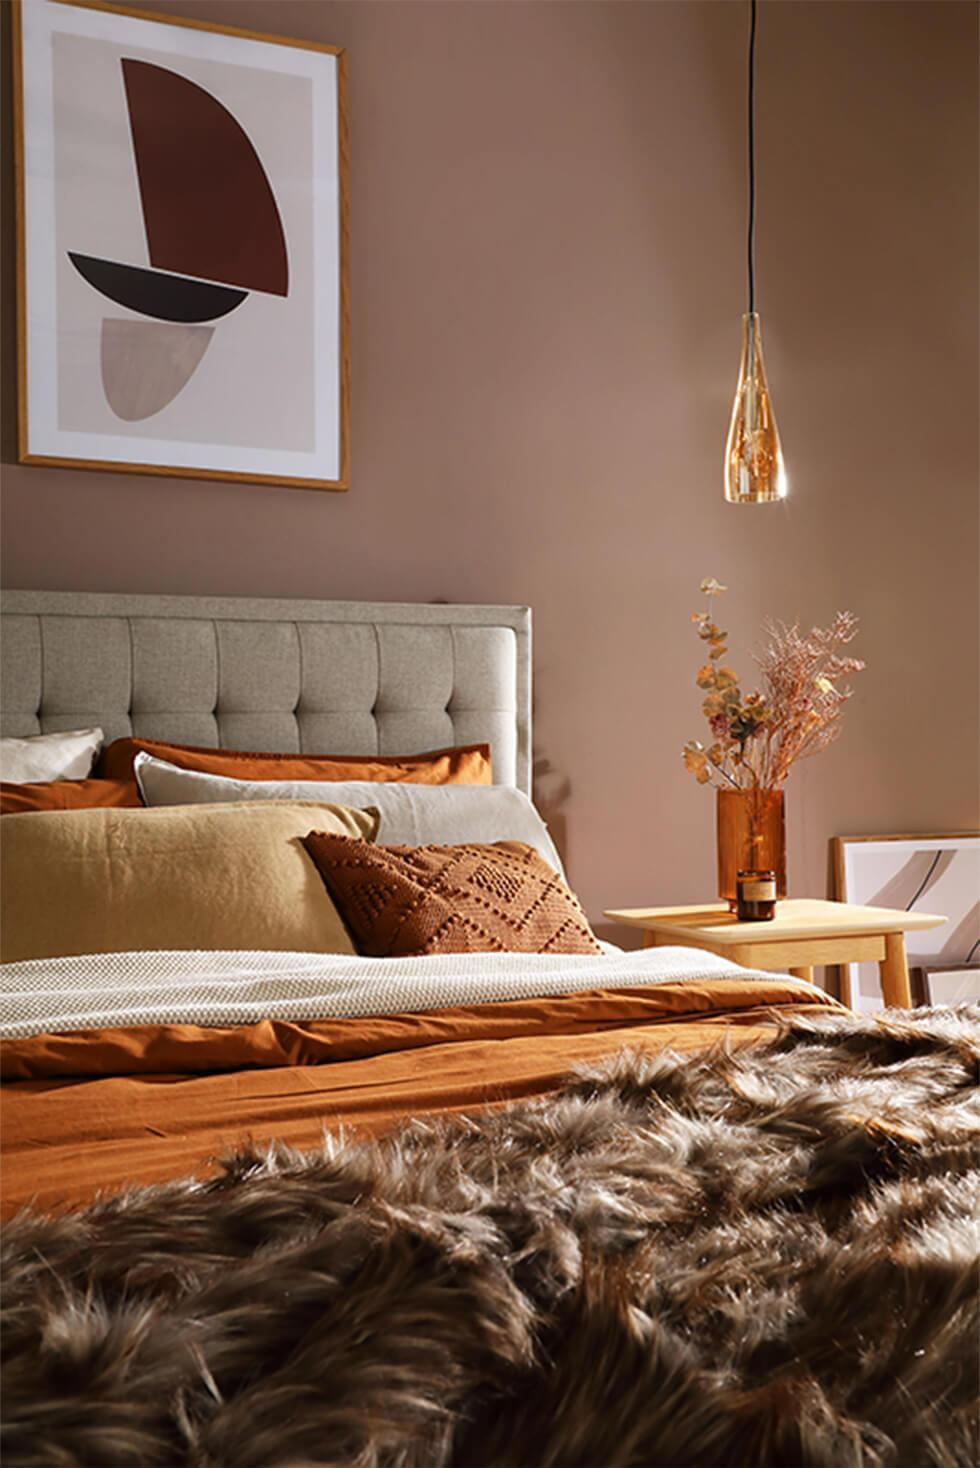 Warm glamorous bedroom with beige fabric bed, orange and brown bedding, fur throw and brass lighting